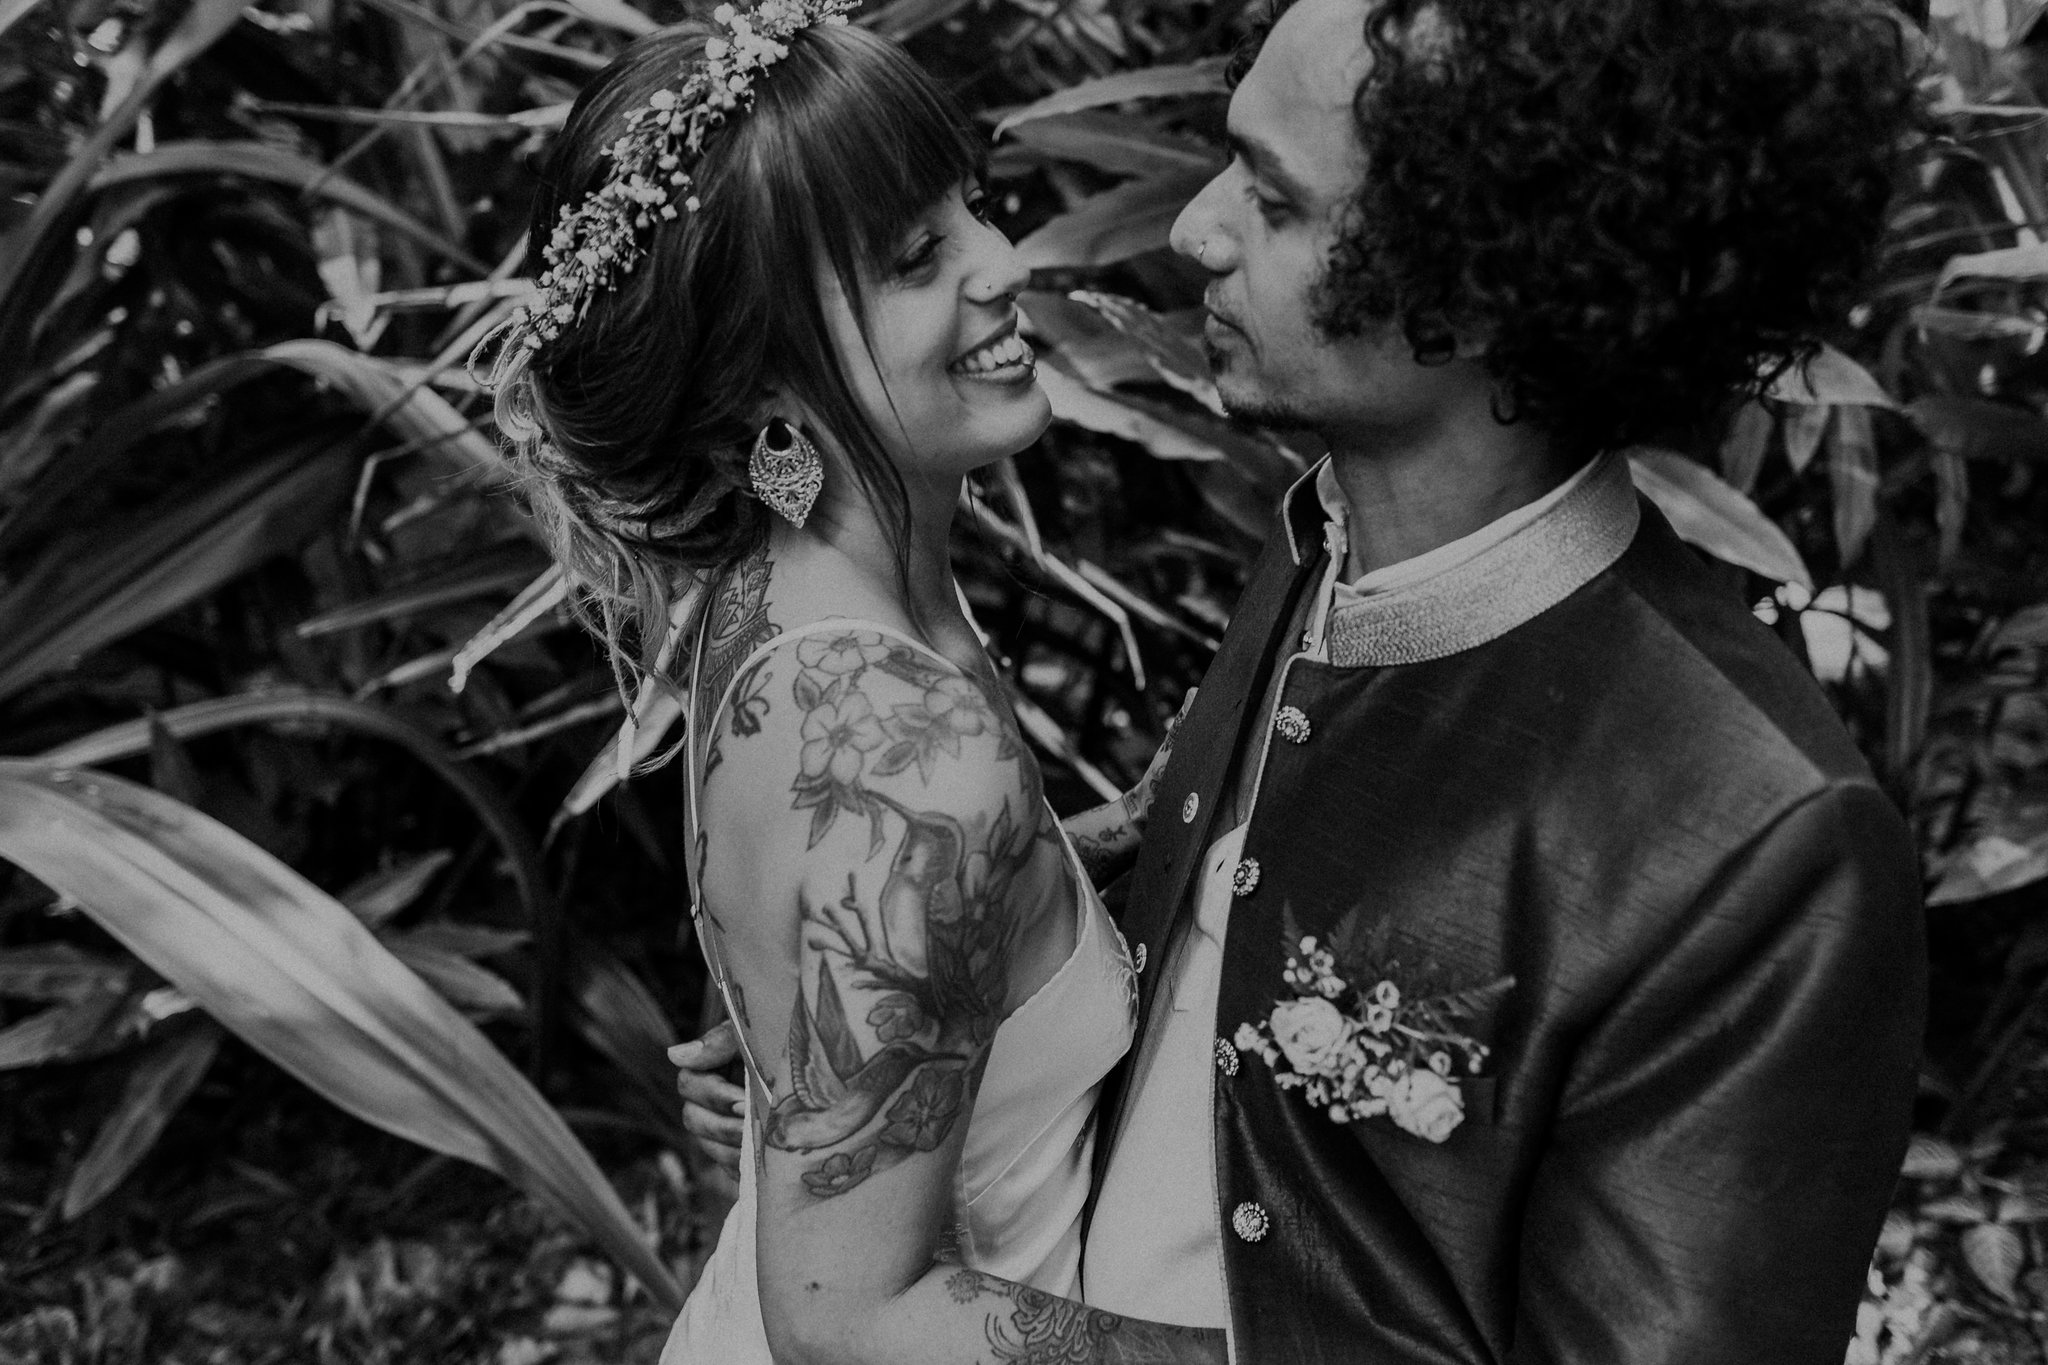 Dani & Bruno - We couldn't have had any better photographer than Laura from Full Hearts.My husband and I first saw Laura's work on her website and immediately fell in love with her candid style shots. We live in Sydney, however our wedding was in the Daintree in Queensland, and Laura was extremely easy to liaise with to organise her travel.She was brilliant at directing us with some portrait shots as well as capturing all of the special moments without us realising she was even snapping away.The photographs are beautiful and tell the story of our wedding day.